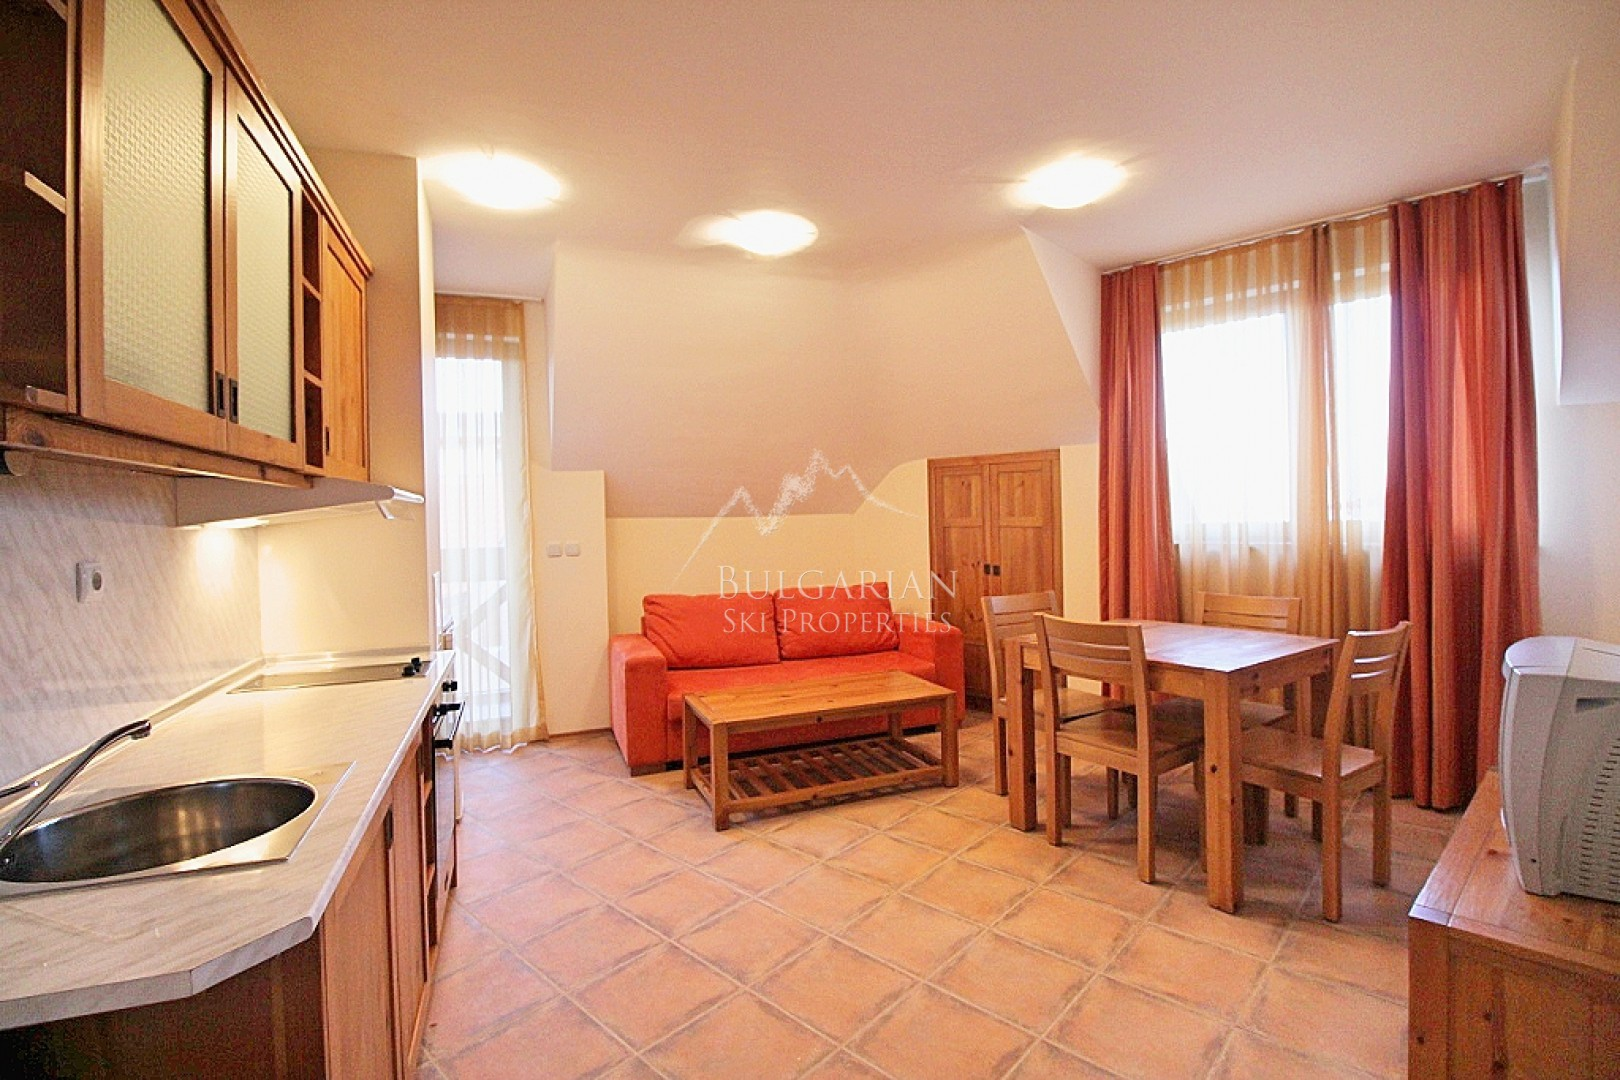 Bansko, Murphys Lodge: furnished one-bedroom apartment for sale